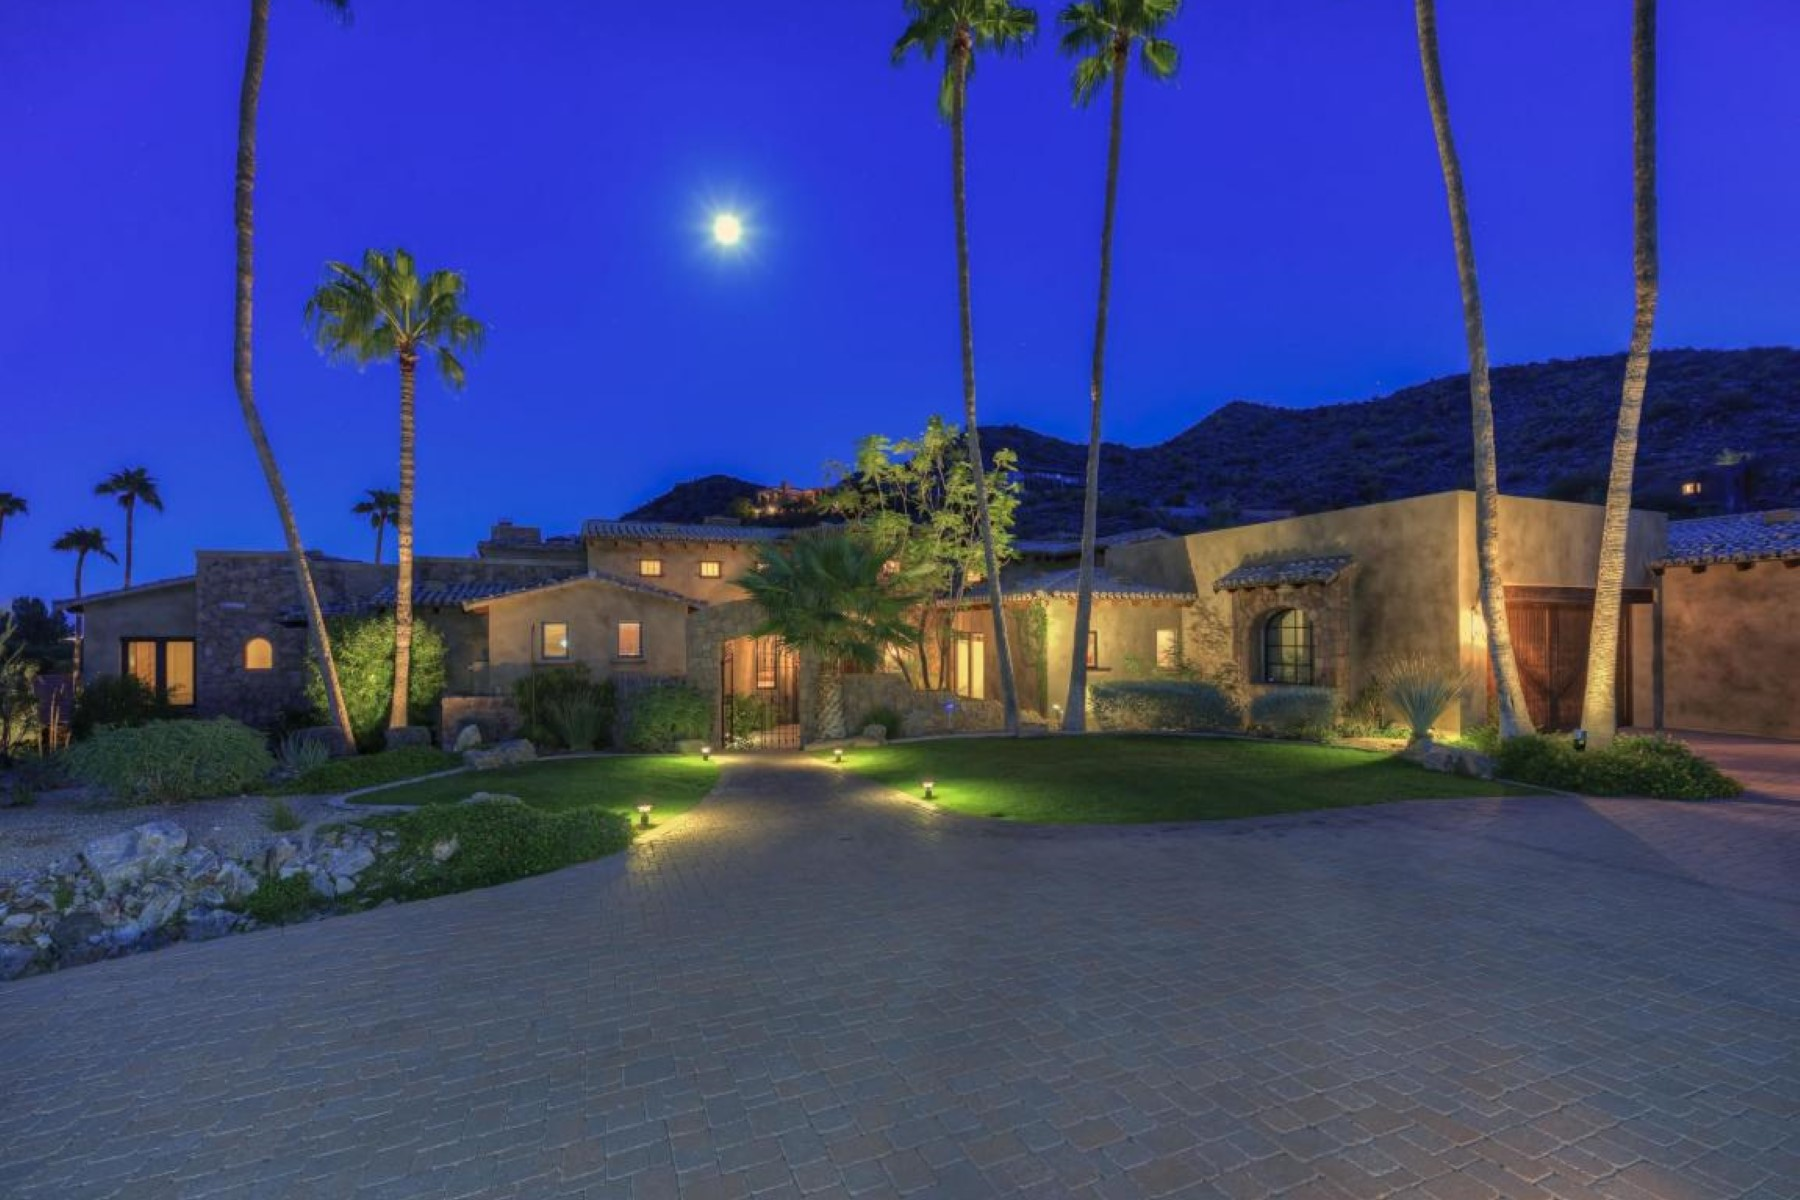 Casa Unifamiliar por un Venta en Beautiful custom home with panoramic views 8301 N Charles Dr Paradise Valley, Arizona, 85253 Estados Unidos